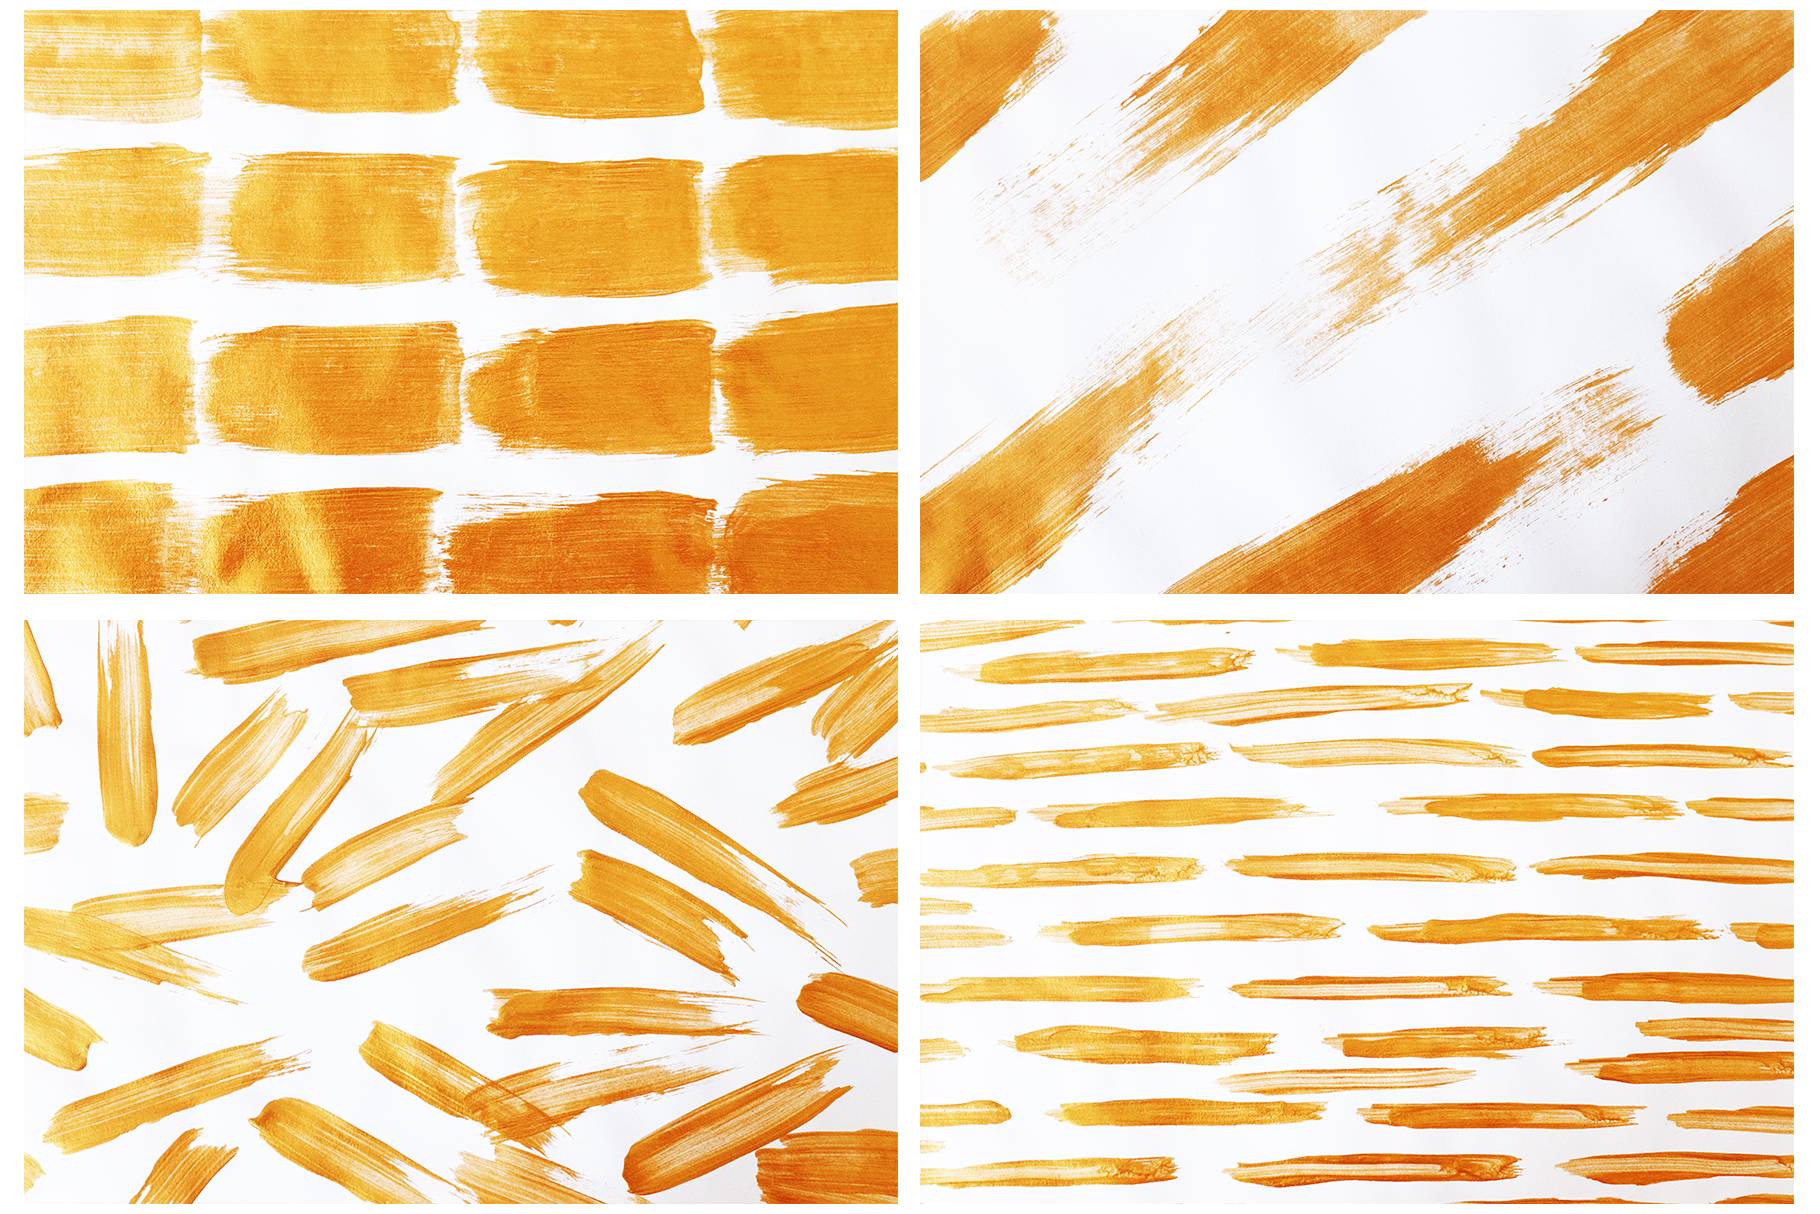 Gold & White Backgrounds, Wedding Invitation Papers example image 4